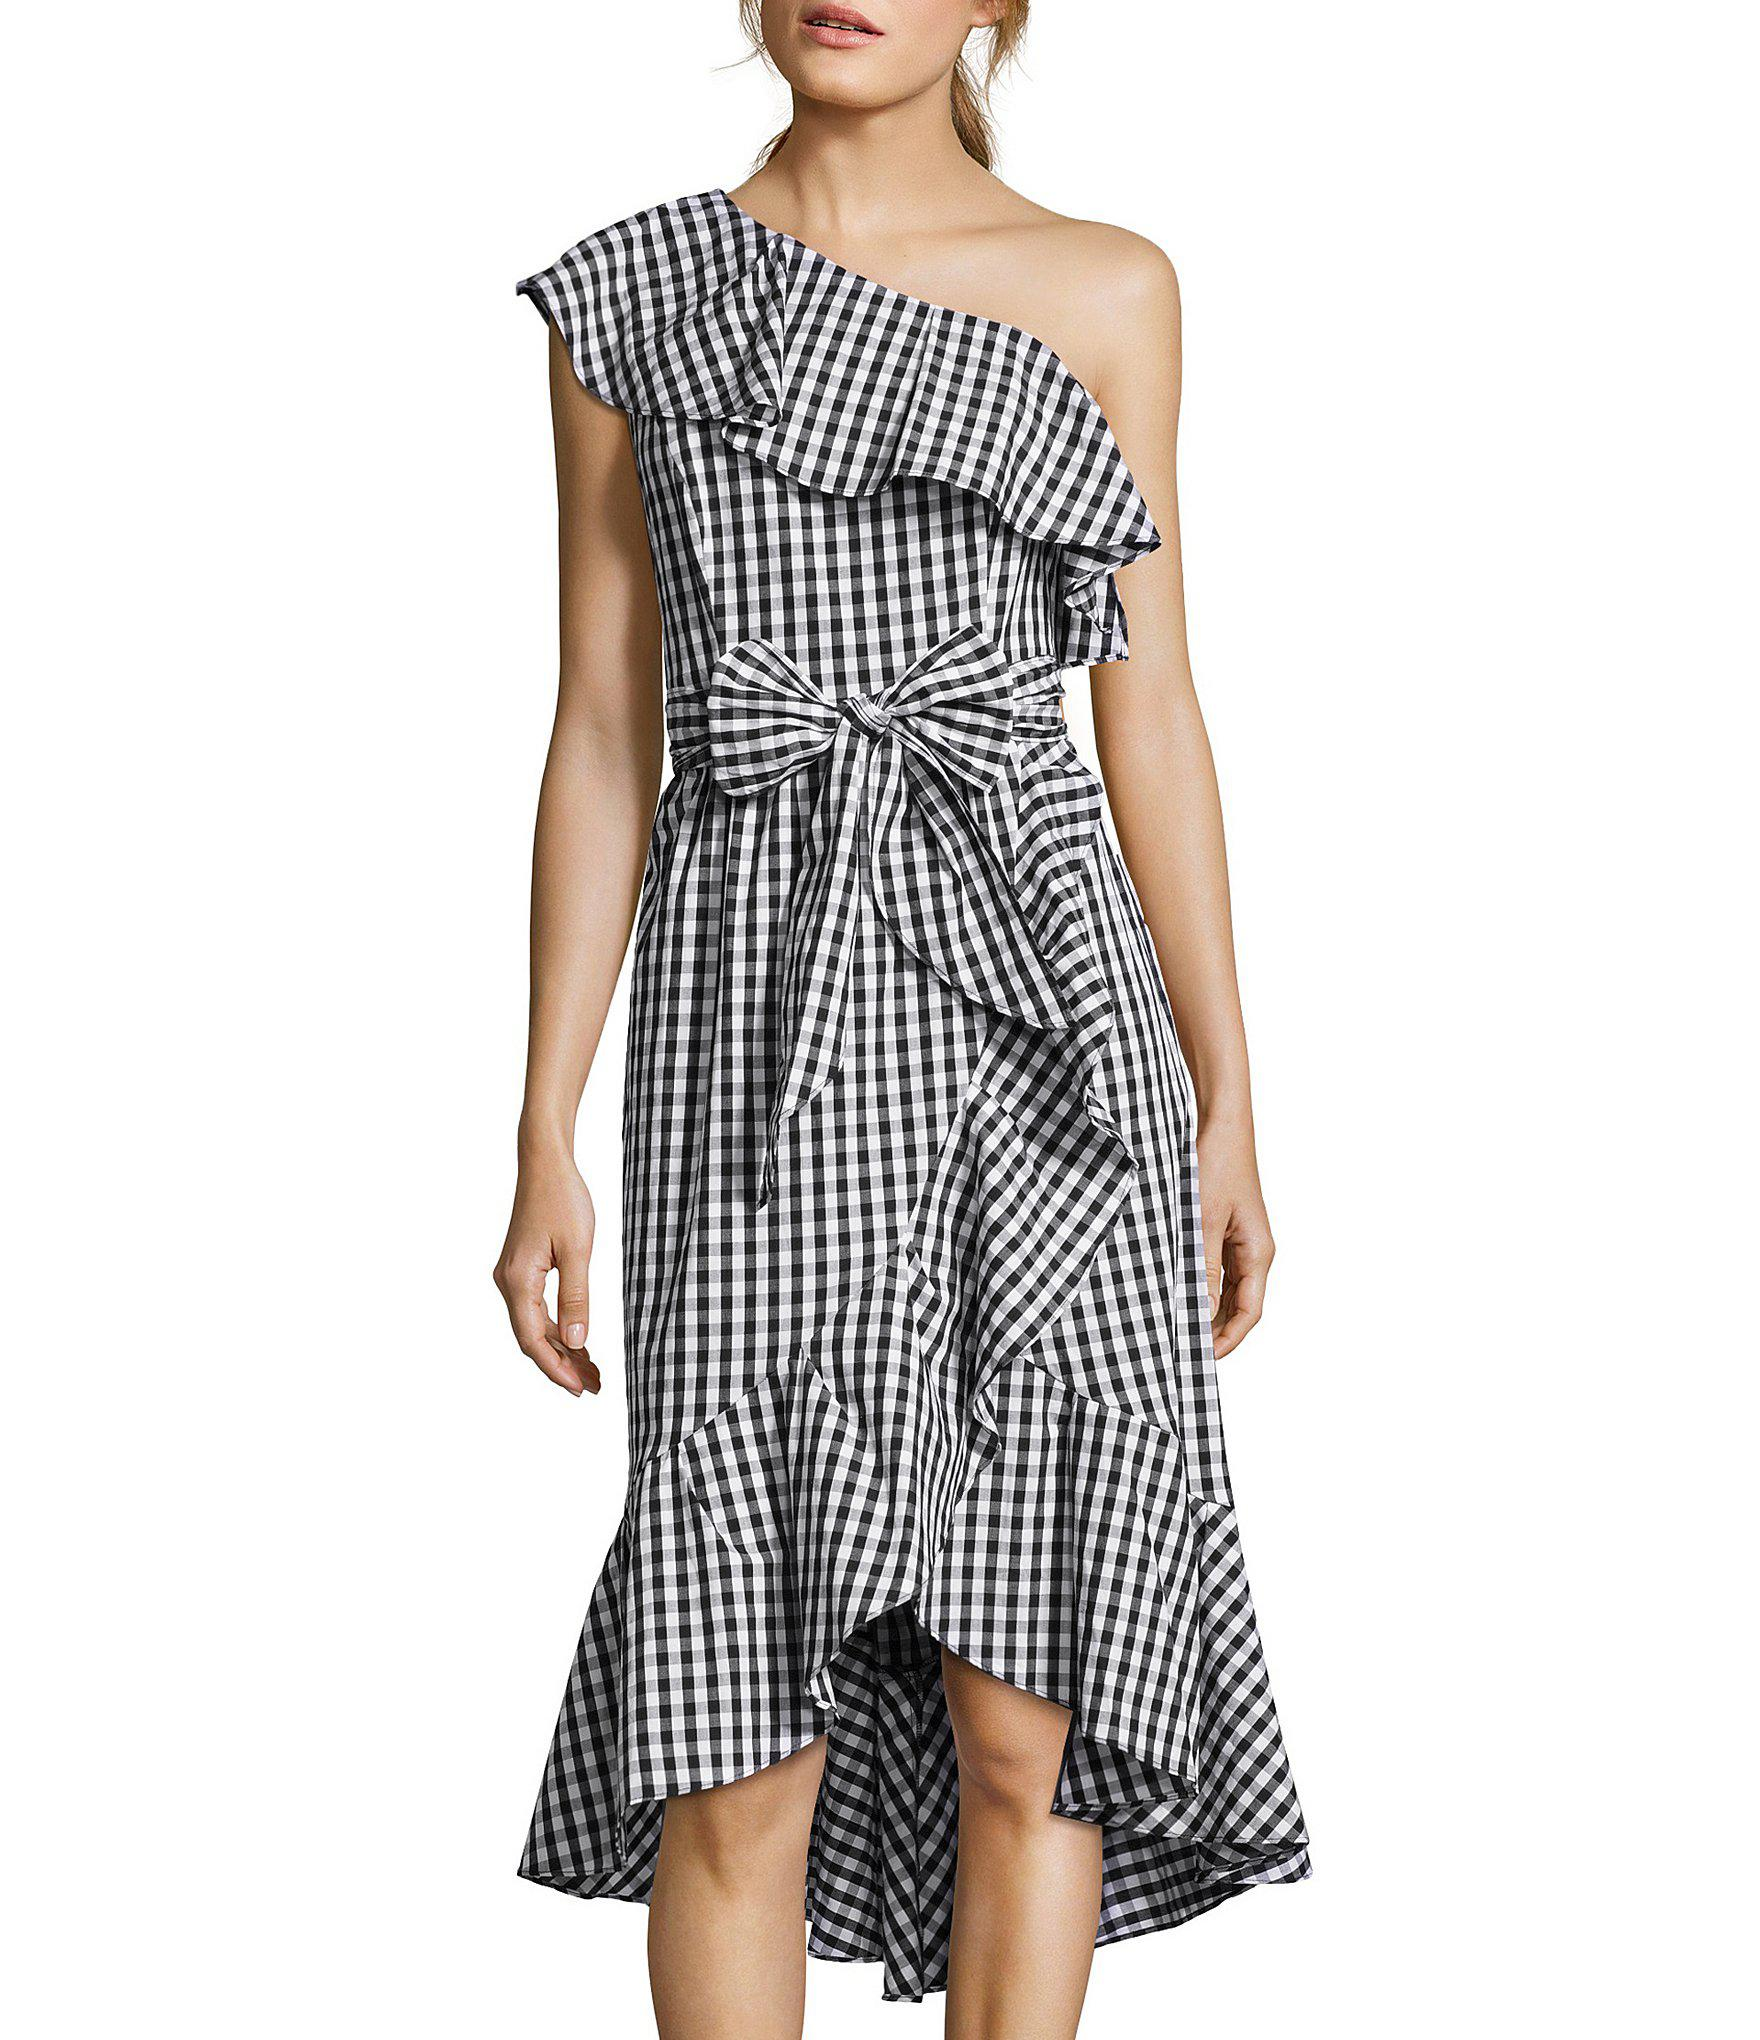 46b6c7eb8a5 Lyst - Adrianna Papell Petite Size One Shoulder Gingham Tie Waist Hi ...